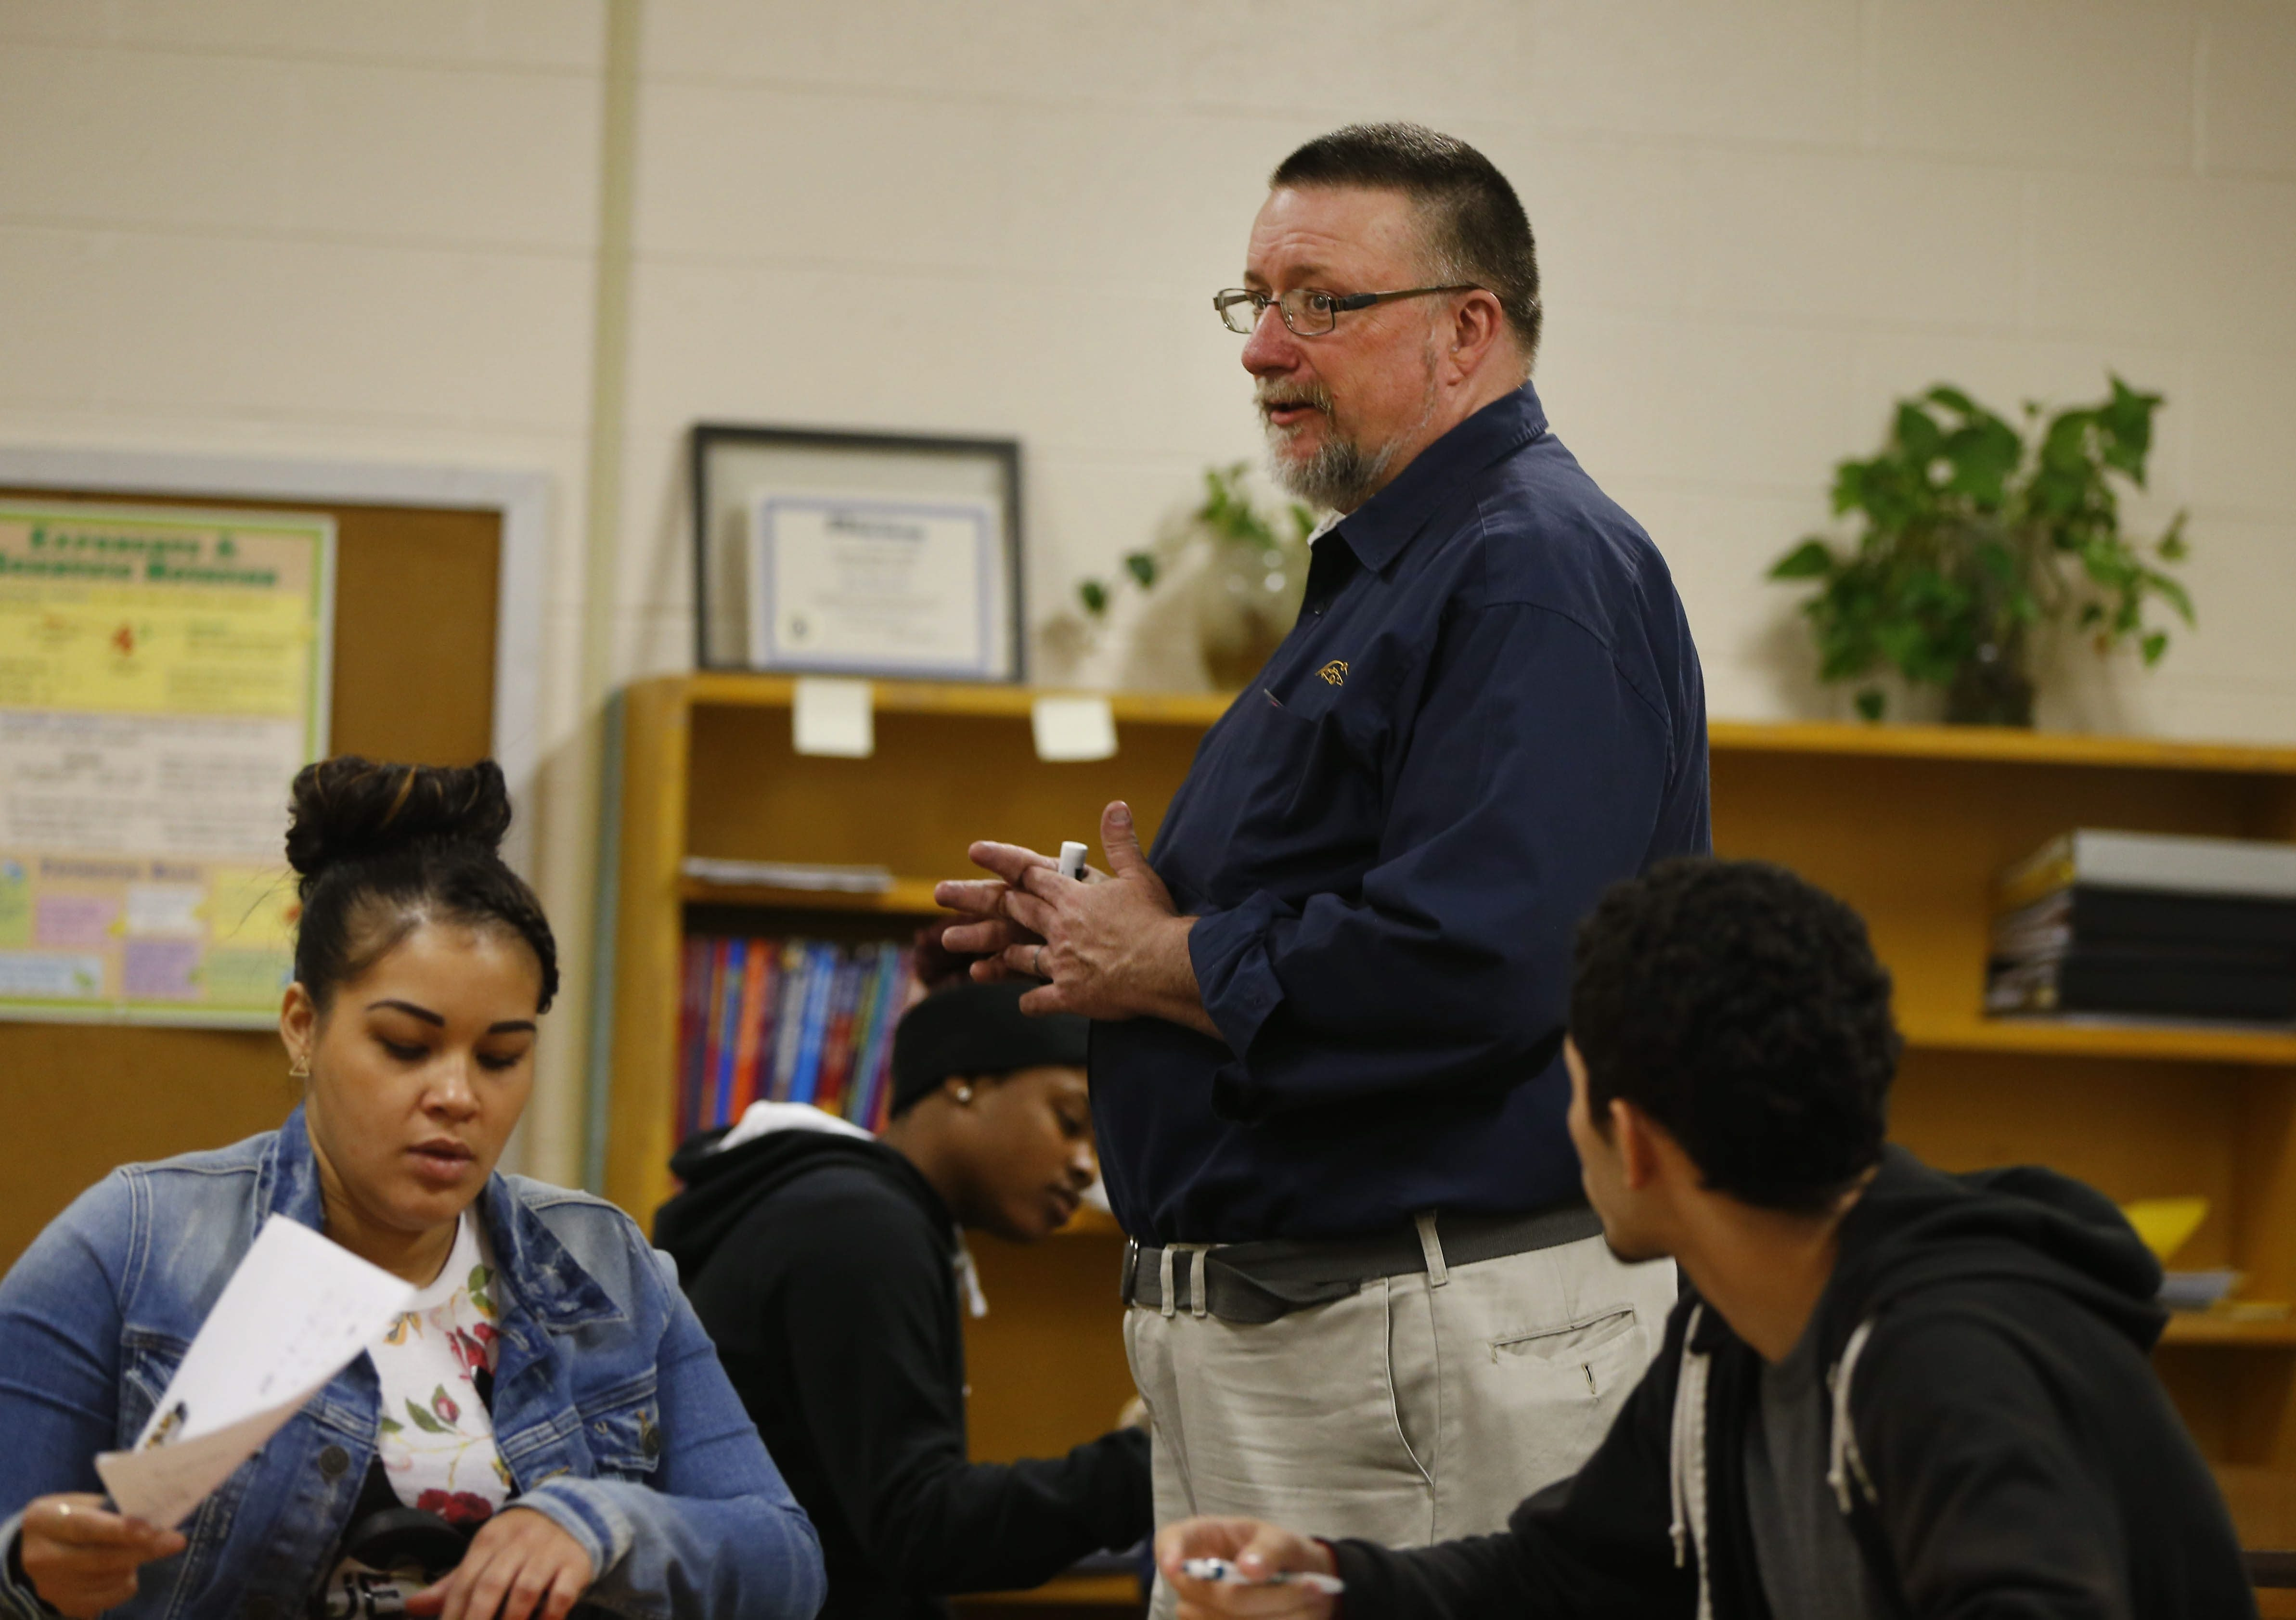 Instructor David Gorman works with students on math problems at the Career Collegiate Institute, the youth program of the Buffalo Public School's Adult Education Division.